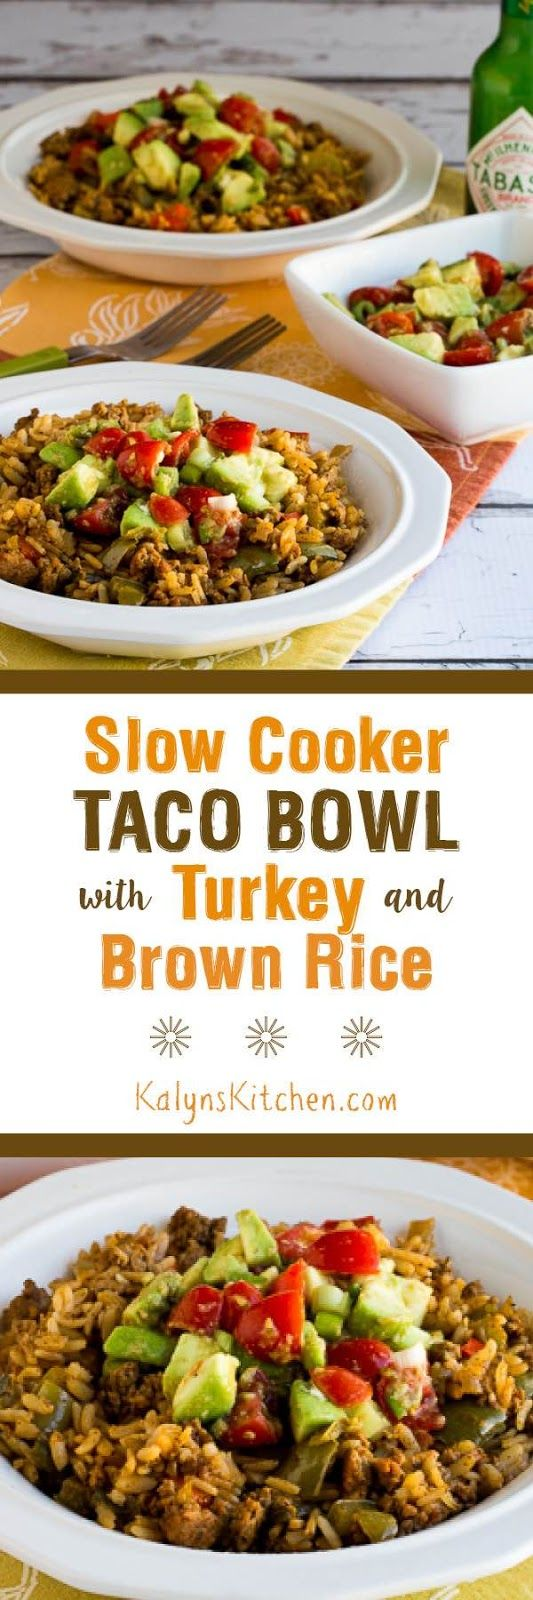 This gluten-free and dairy-free Slow Cooker Taco Bowl with Turkey and Brown Rice is perfect for an easy taco meal any time of year. For a lower-carb version, double the amount of turkey and it will still be delicious! [KalynsKitchen.com] #SlowCooker #SlowCookerTurkey #SlowCookerTacoBowl